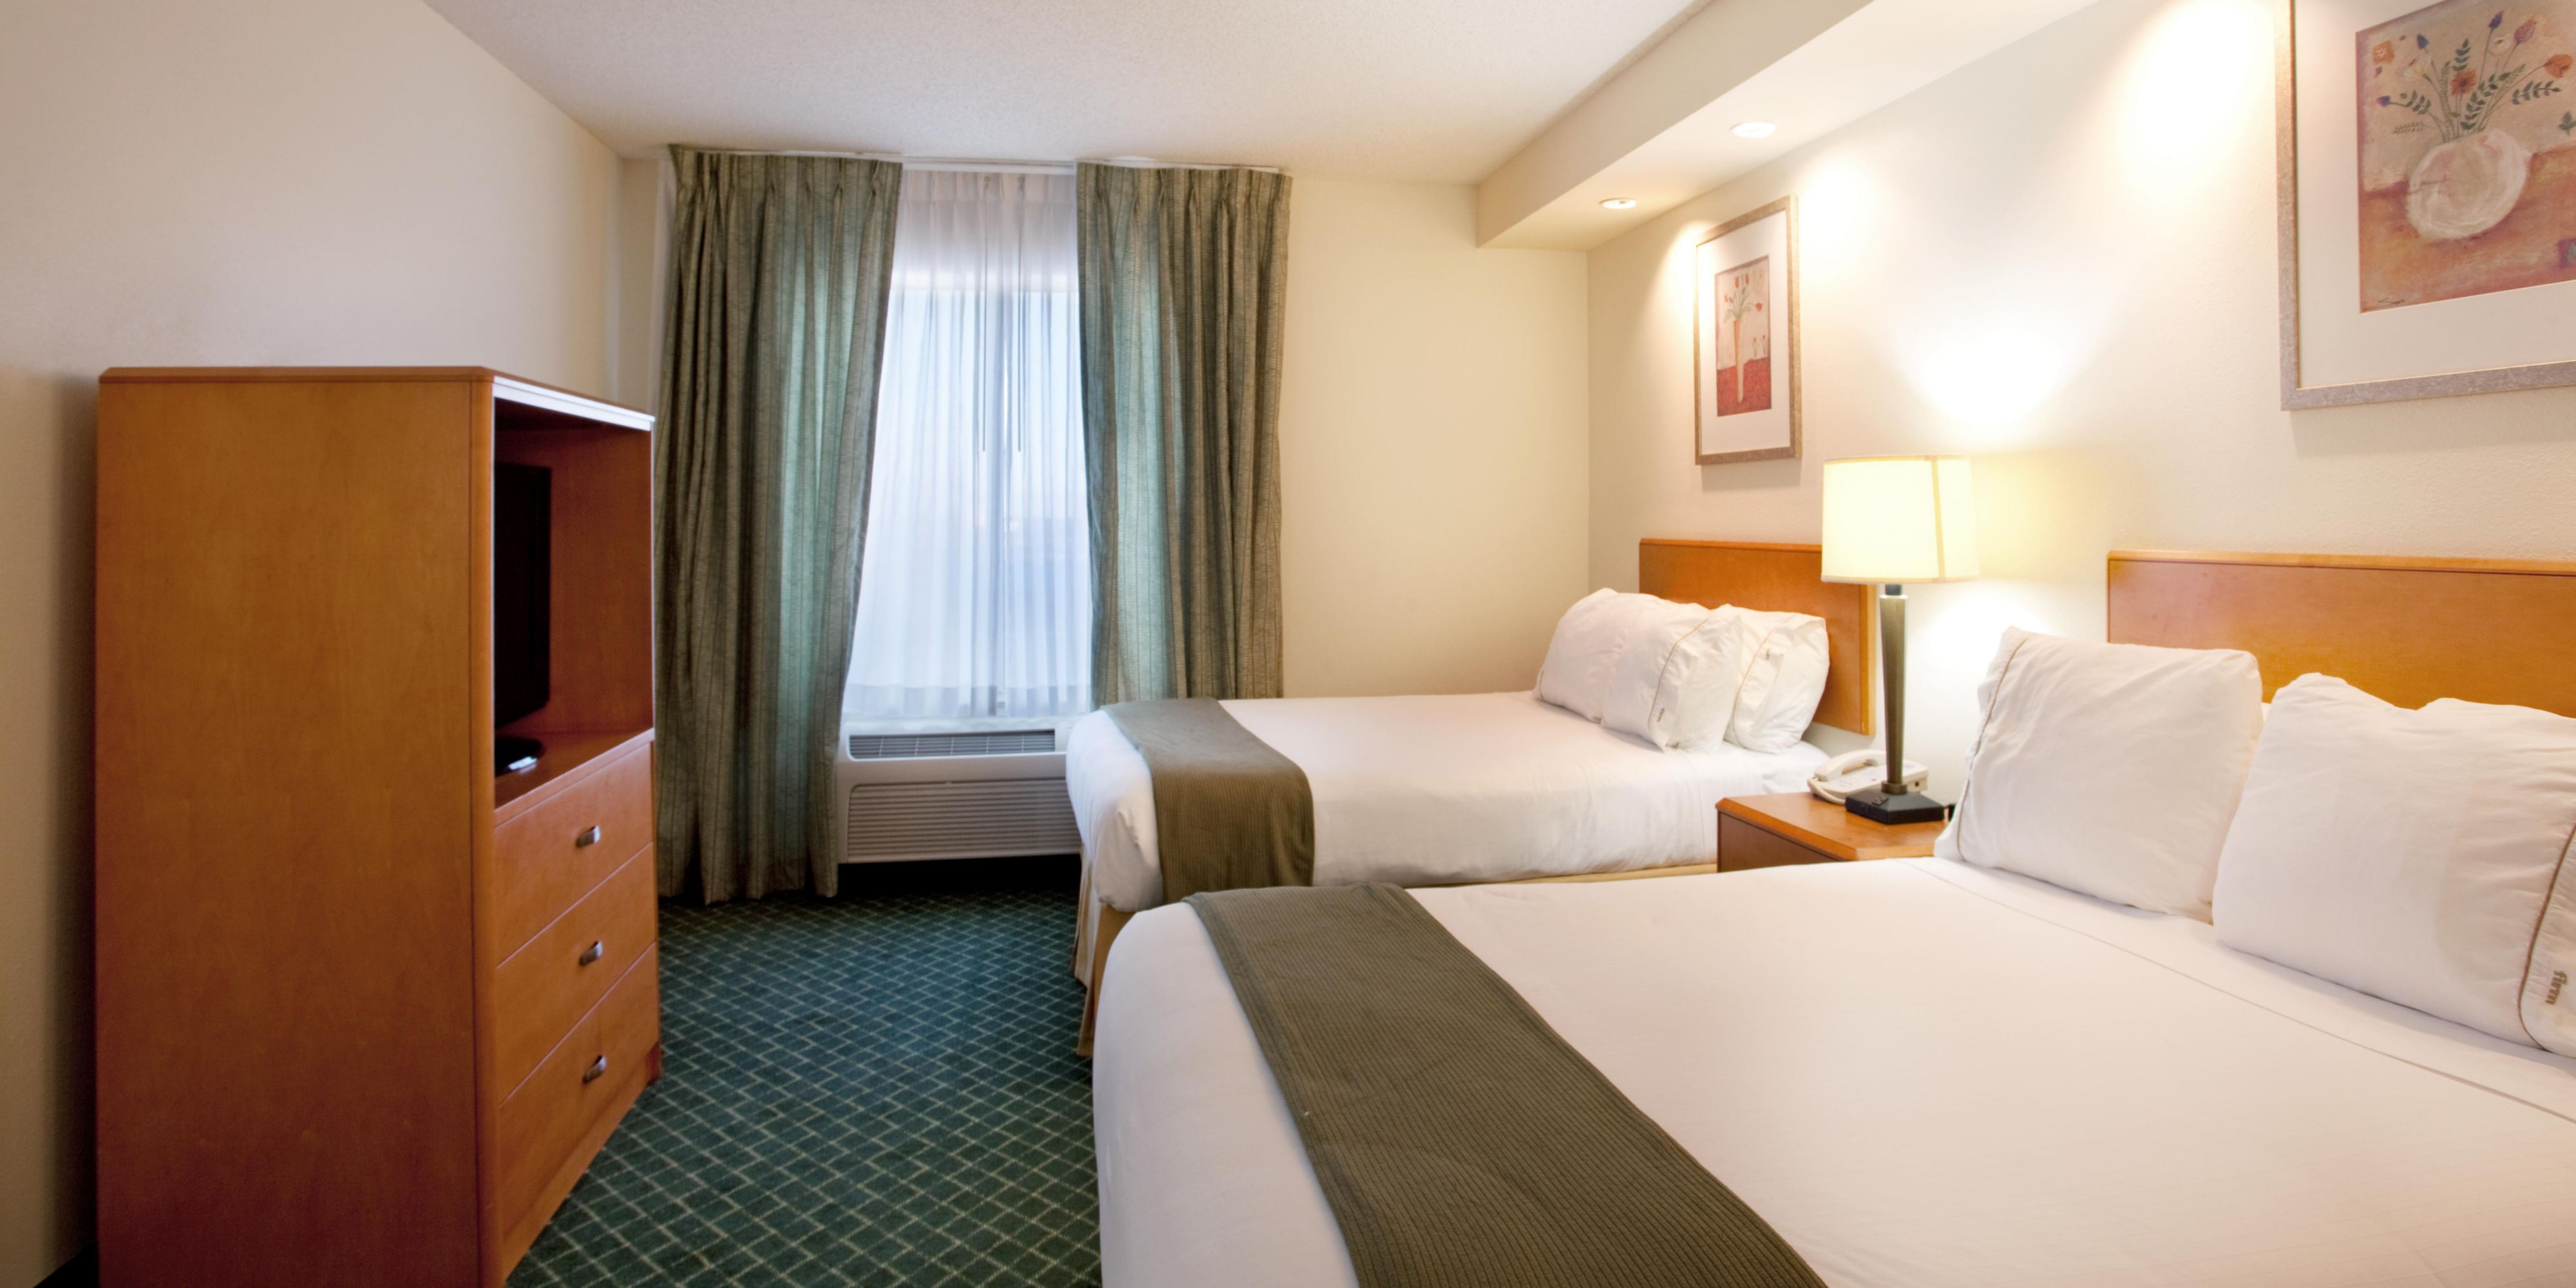 Hotel Rooms Metairie La